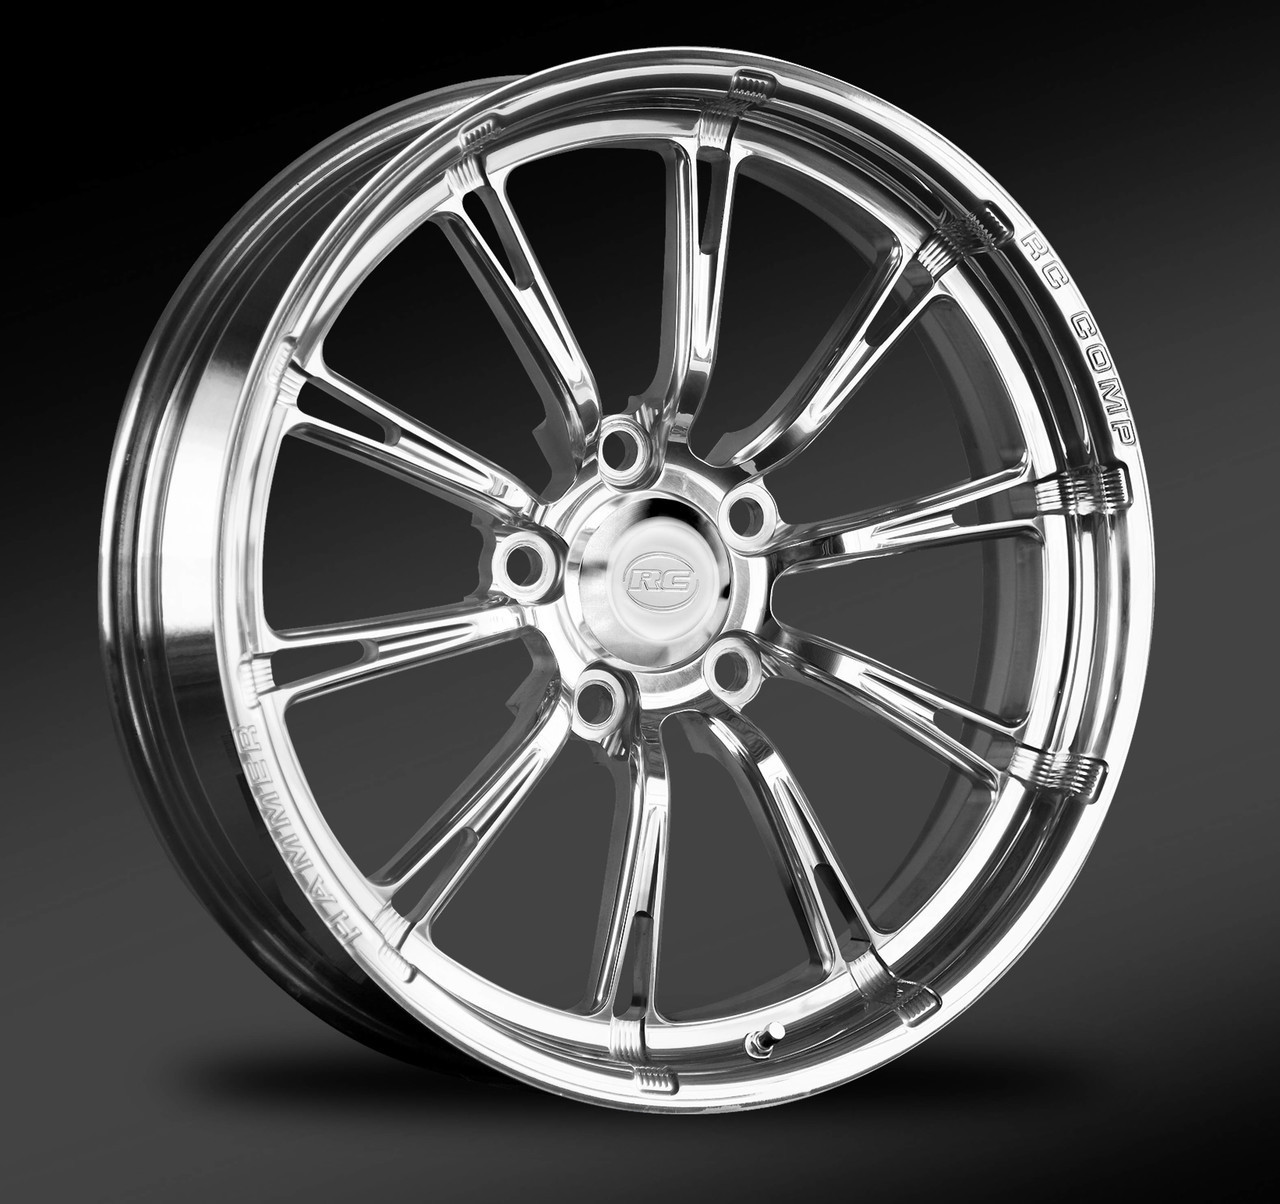 Hammer polished front drag race wheel.